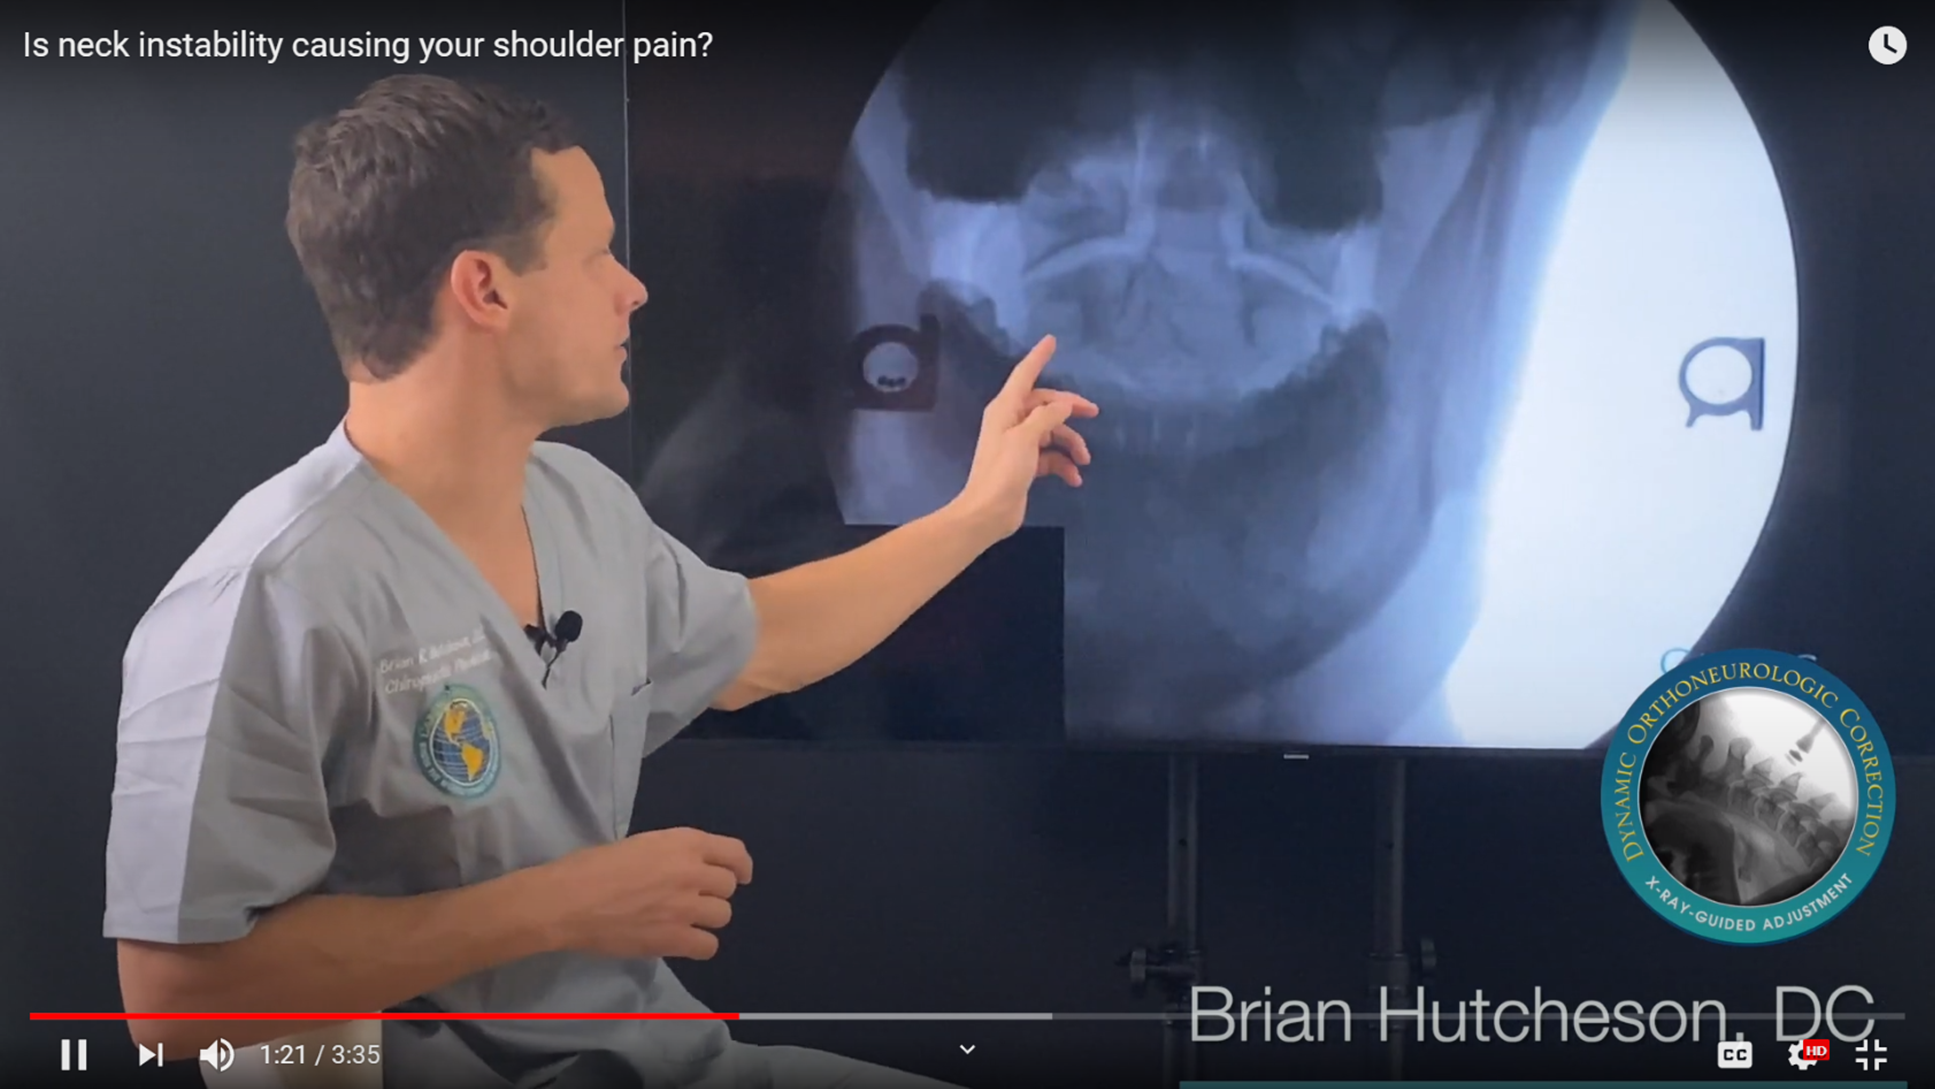 In this still from the video, Dr. Hutcheson describes the DMX image of this patient with unresolved shoulder pain that our team suspected was originating in his cervical spine. Facing the DMX machine, the patient opens his/her mouth to reveal a clearer image of what is happening at the C1-C2 vertebrae and if a malalignment in these vertebrae are causing shoulder pain.